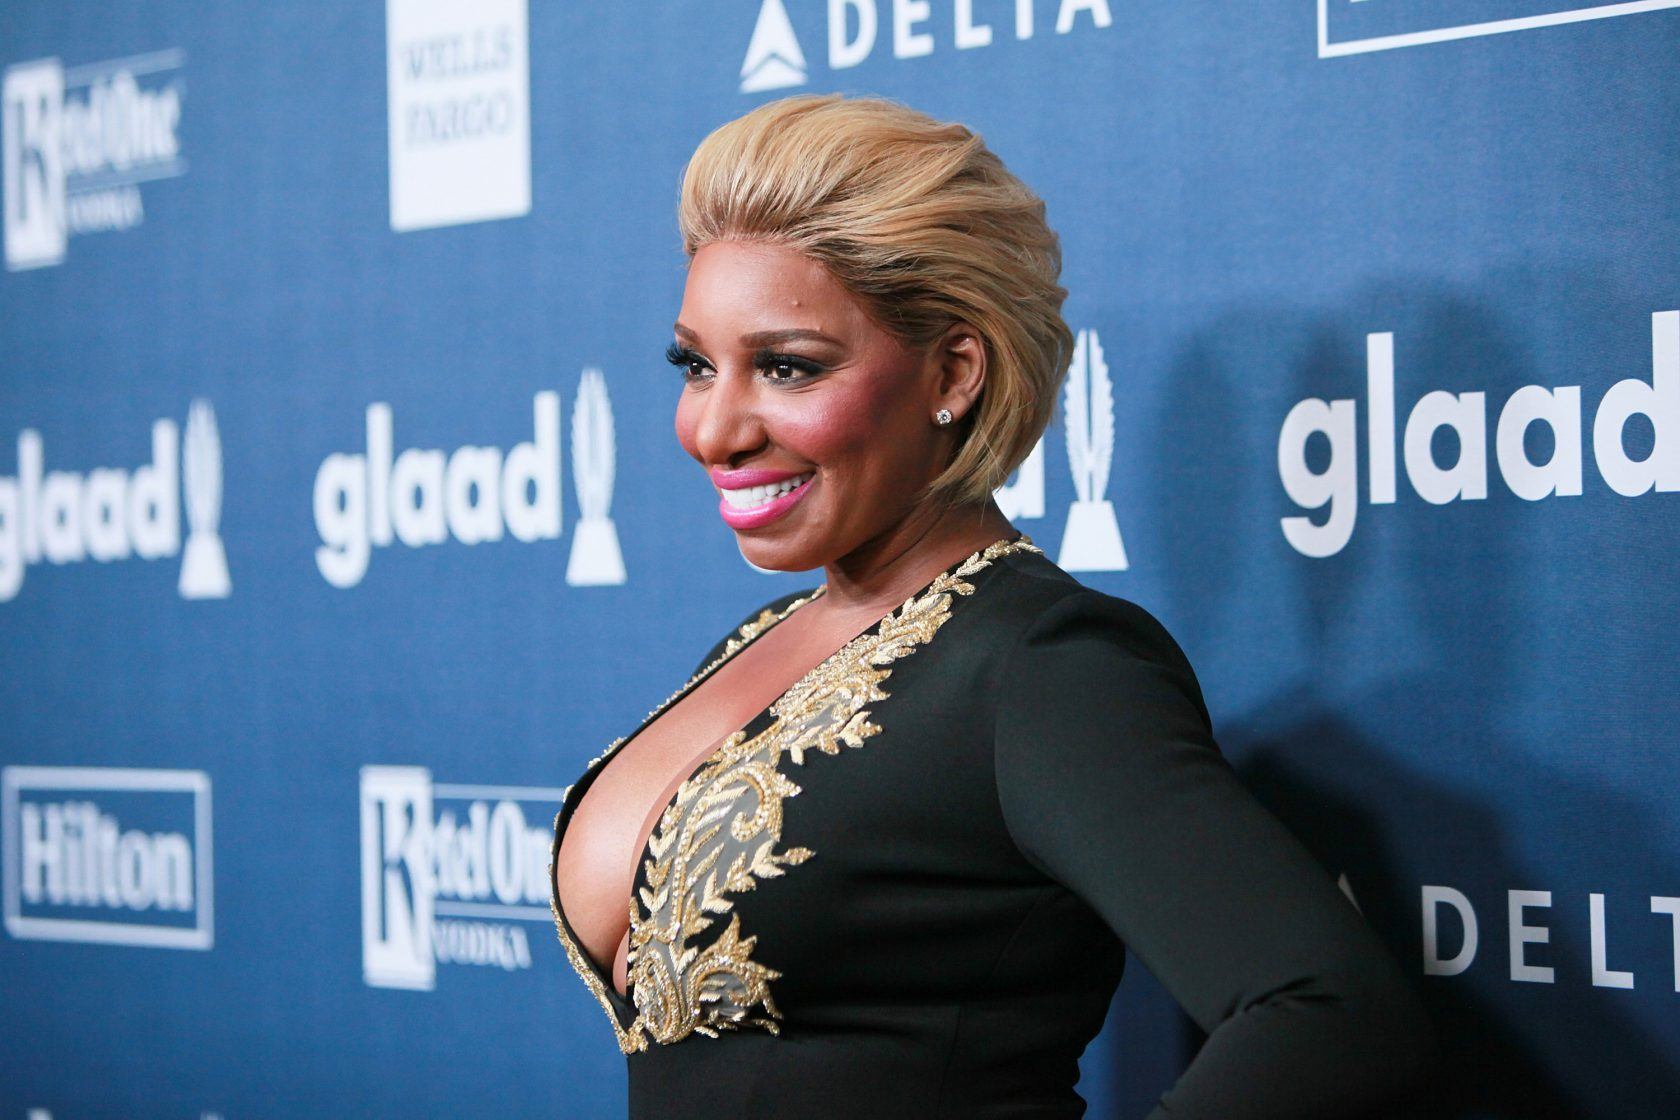 NeNe Leakes' Fans Say That Whoever Doesn't Acknowledge Her Accomplishments Is A Real Hater